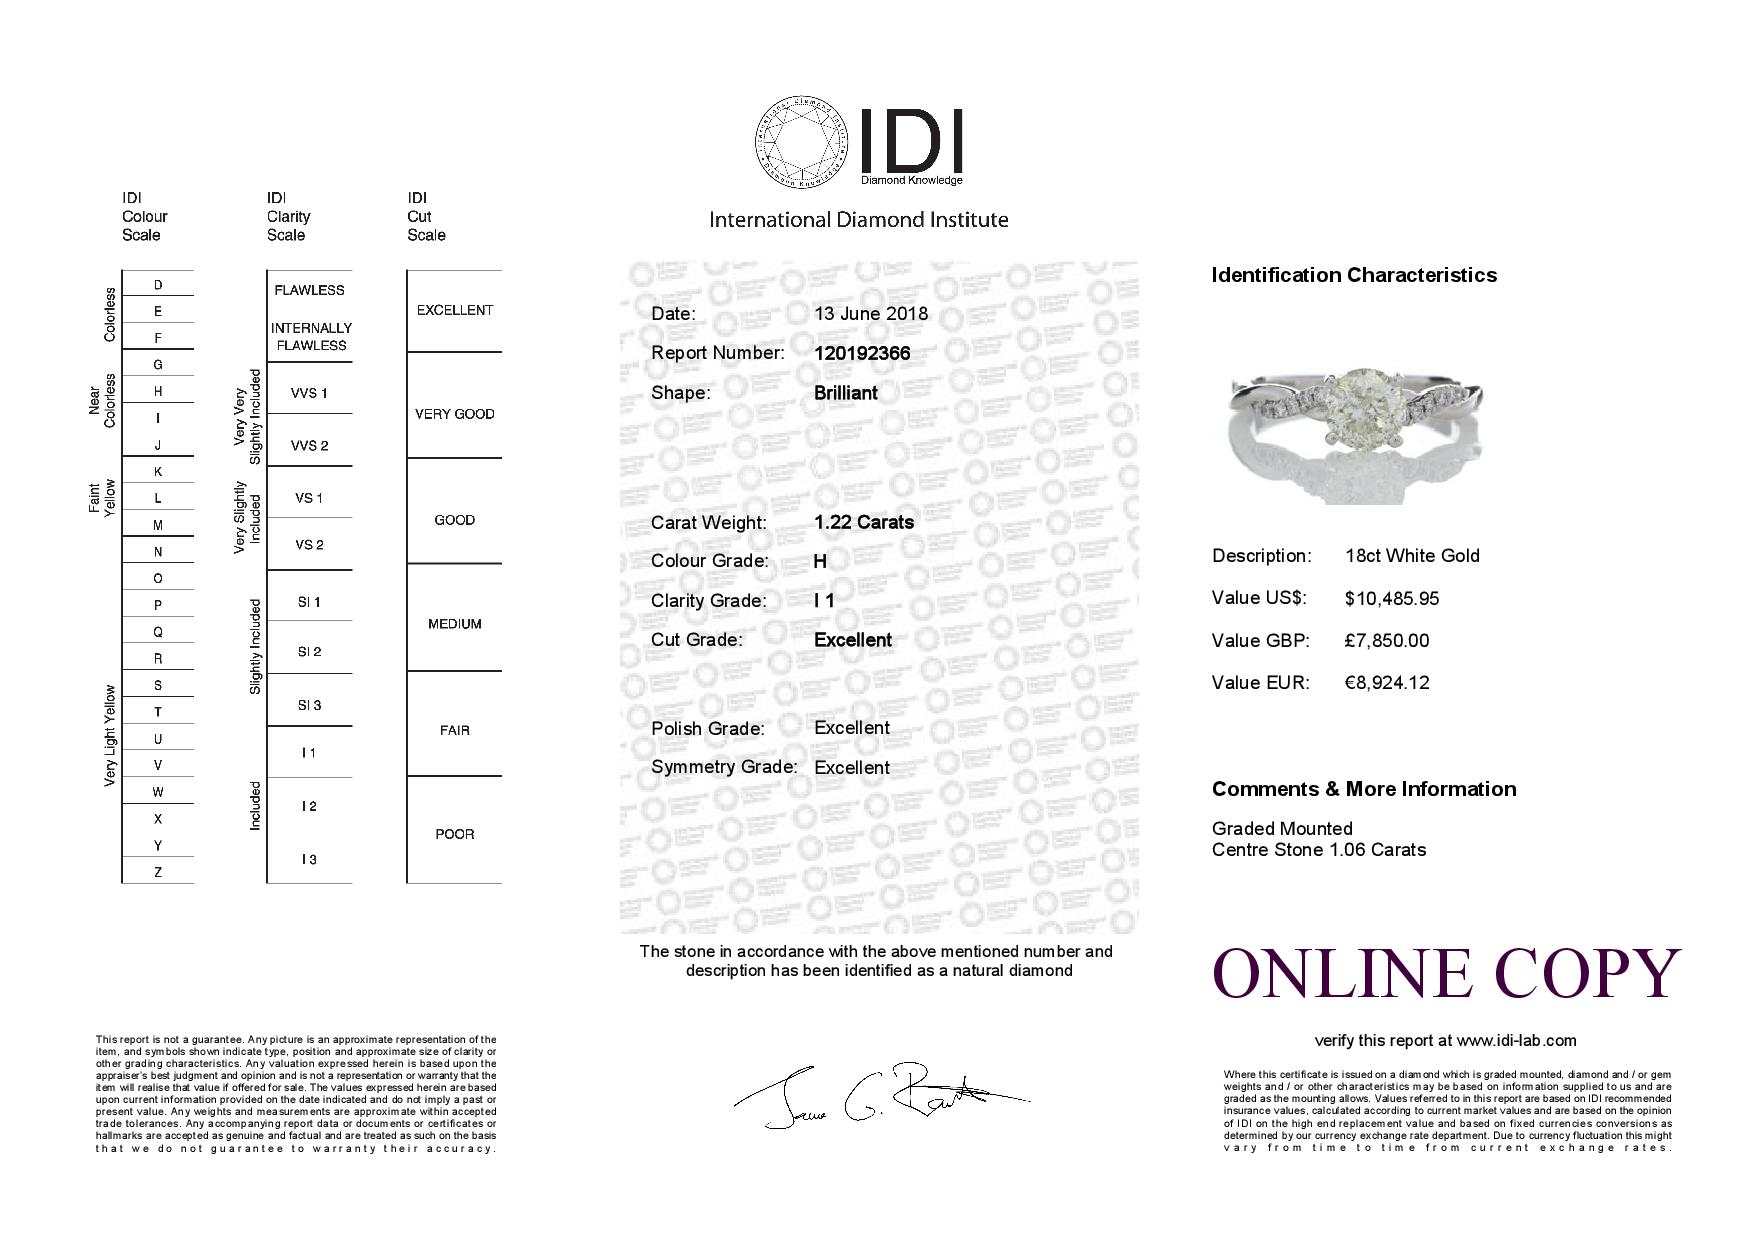 Lot 26 - 18ct White Gold Diamond Ring With Waved Stone Set Shoulders 1.22 Carats